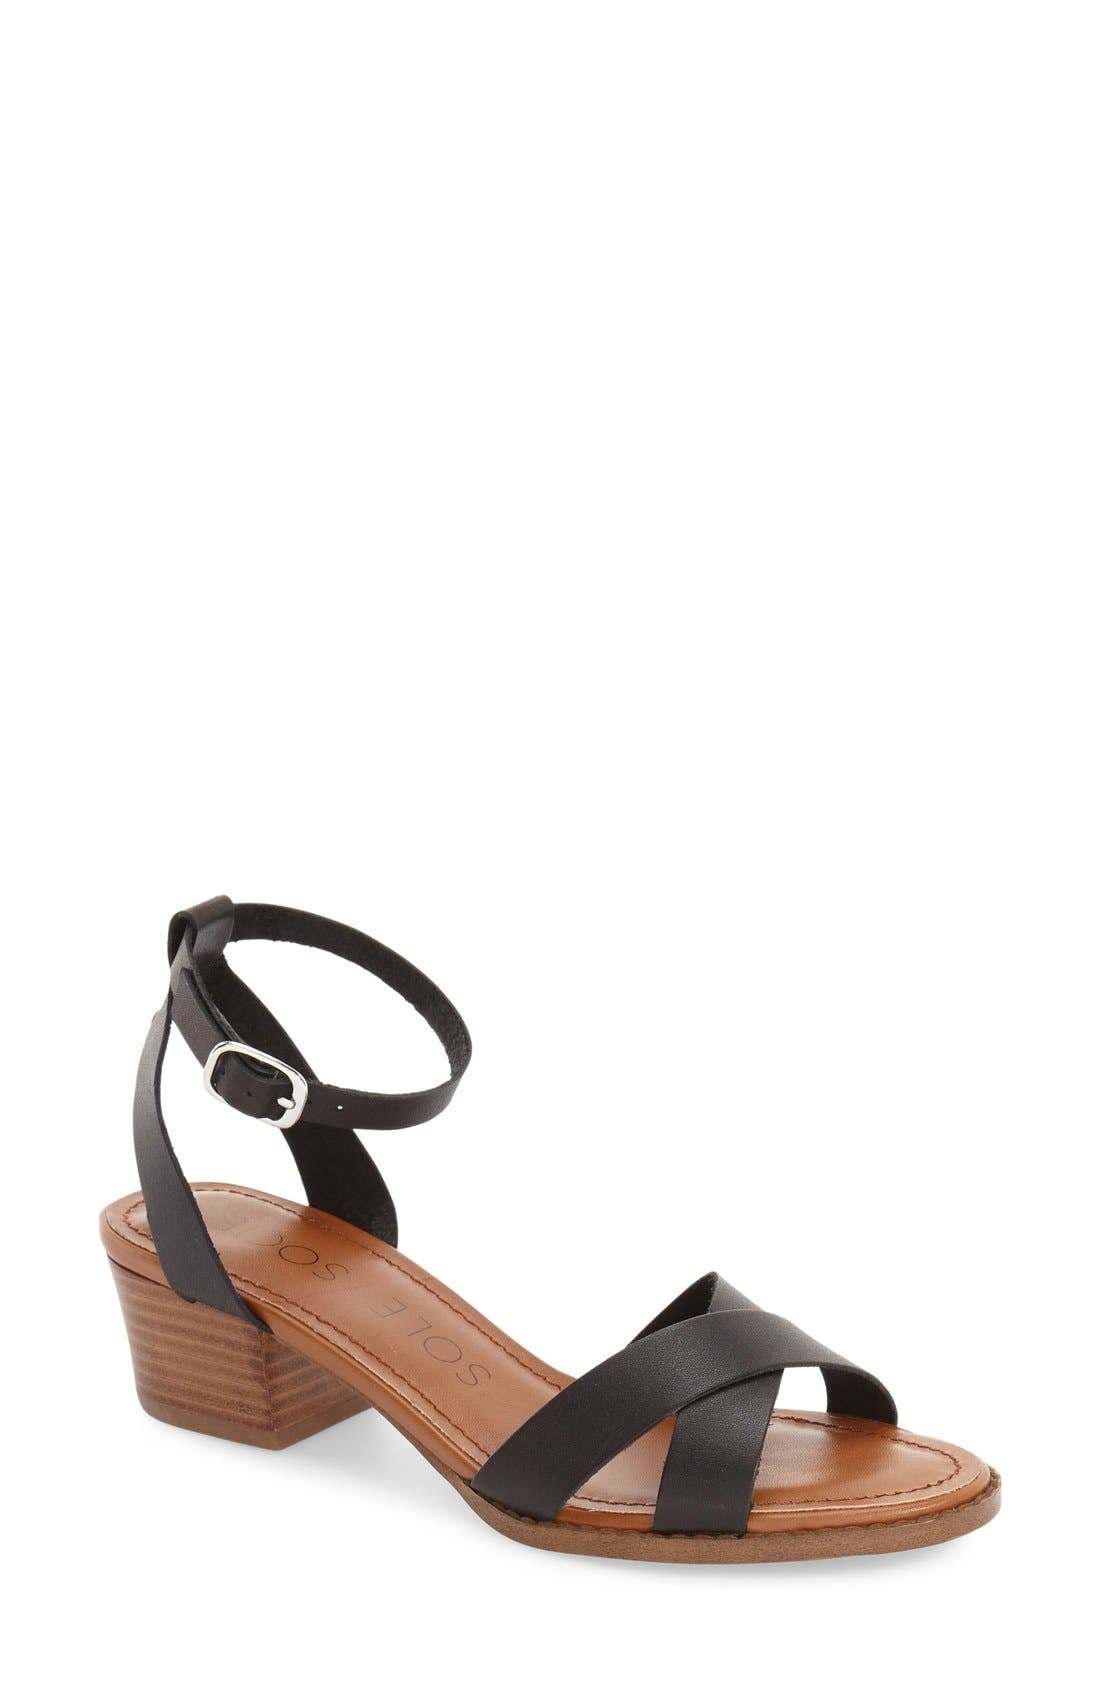 'Savannah' Sandal,                         Main,                         color, 002